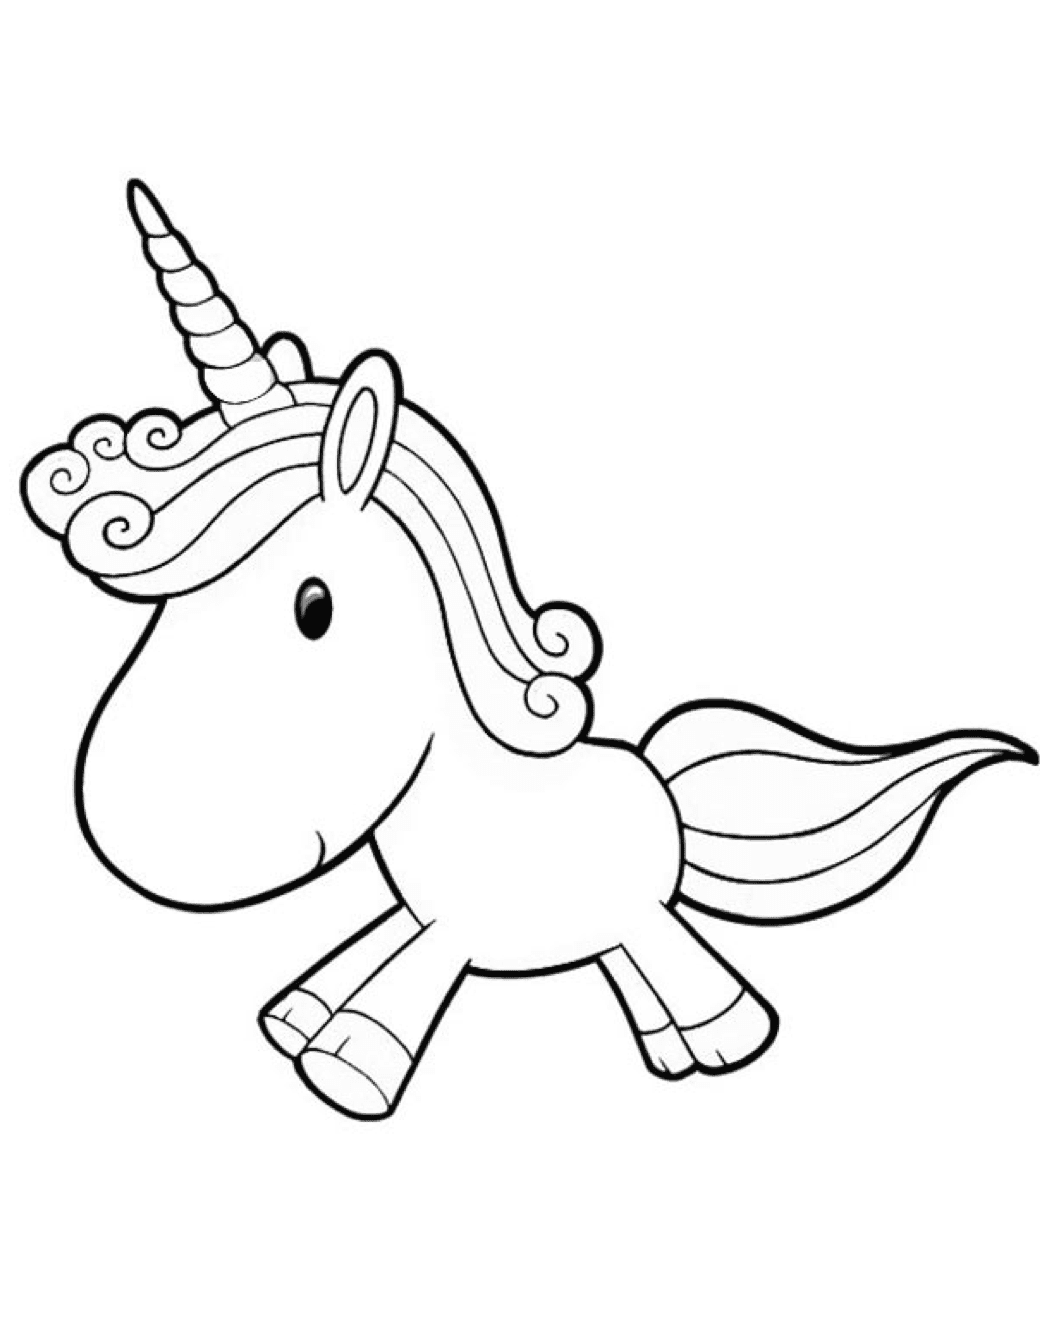 Cartoon Unicorn Coloring Page Coloring Page Book For Kids